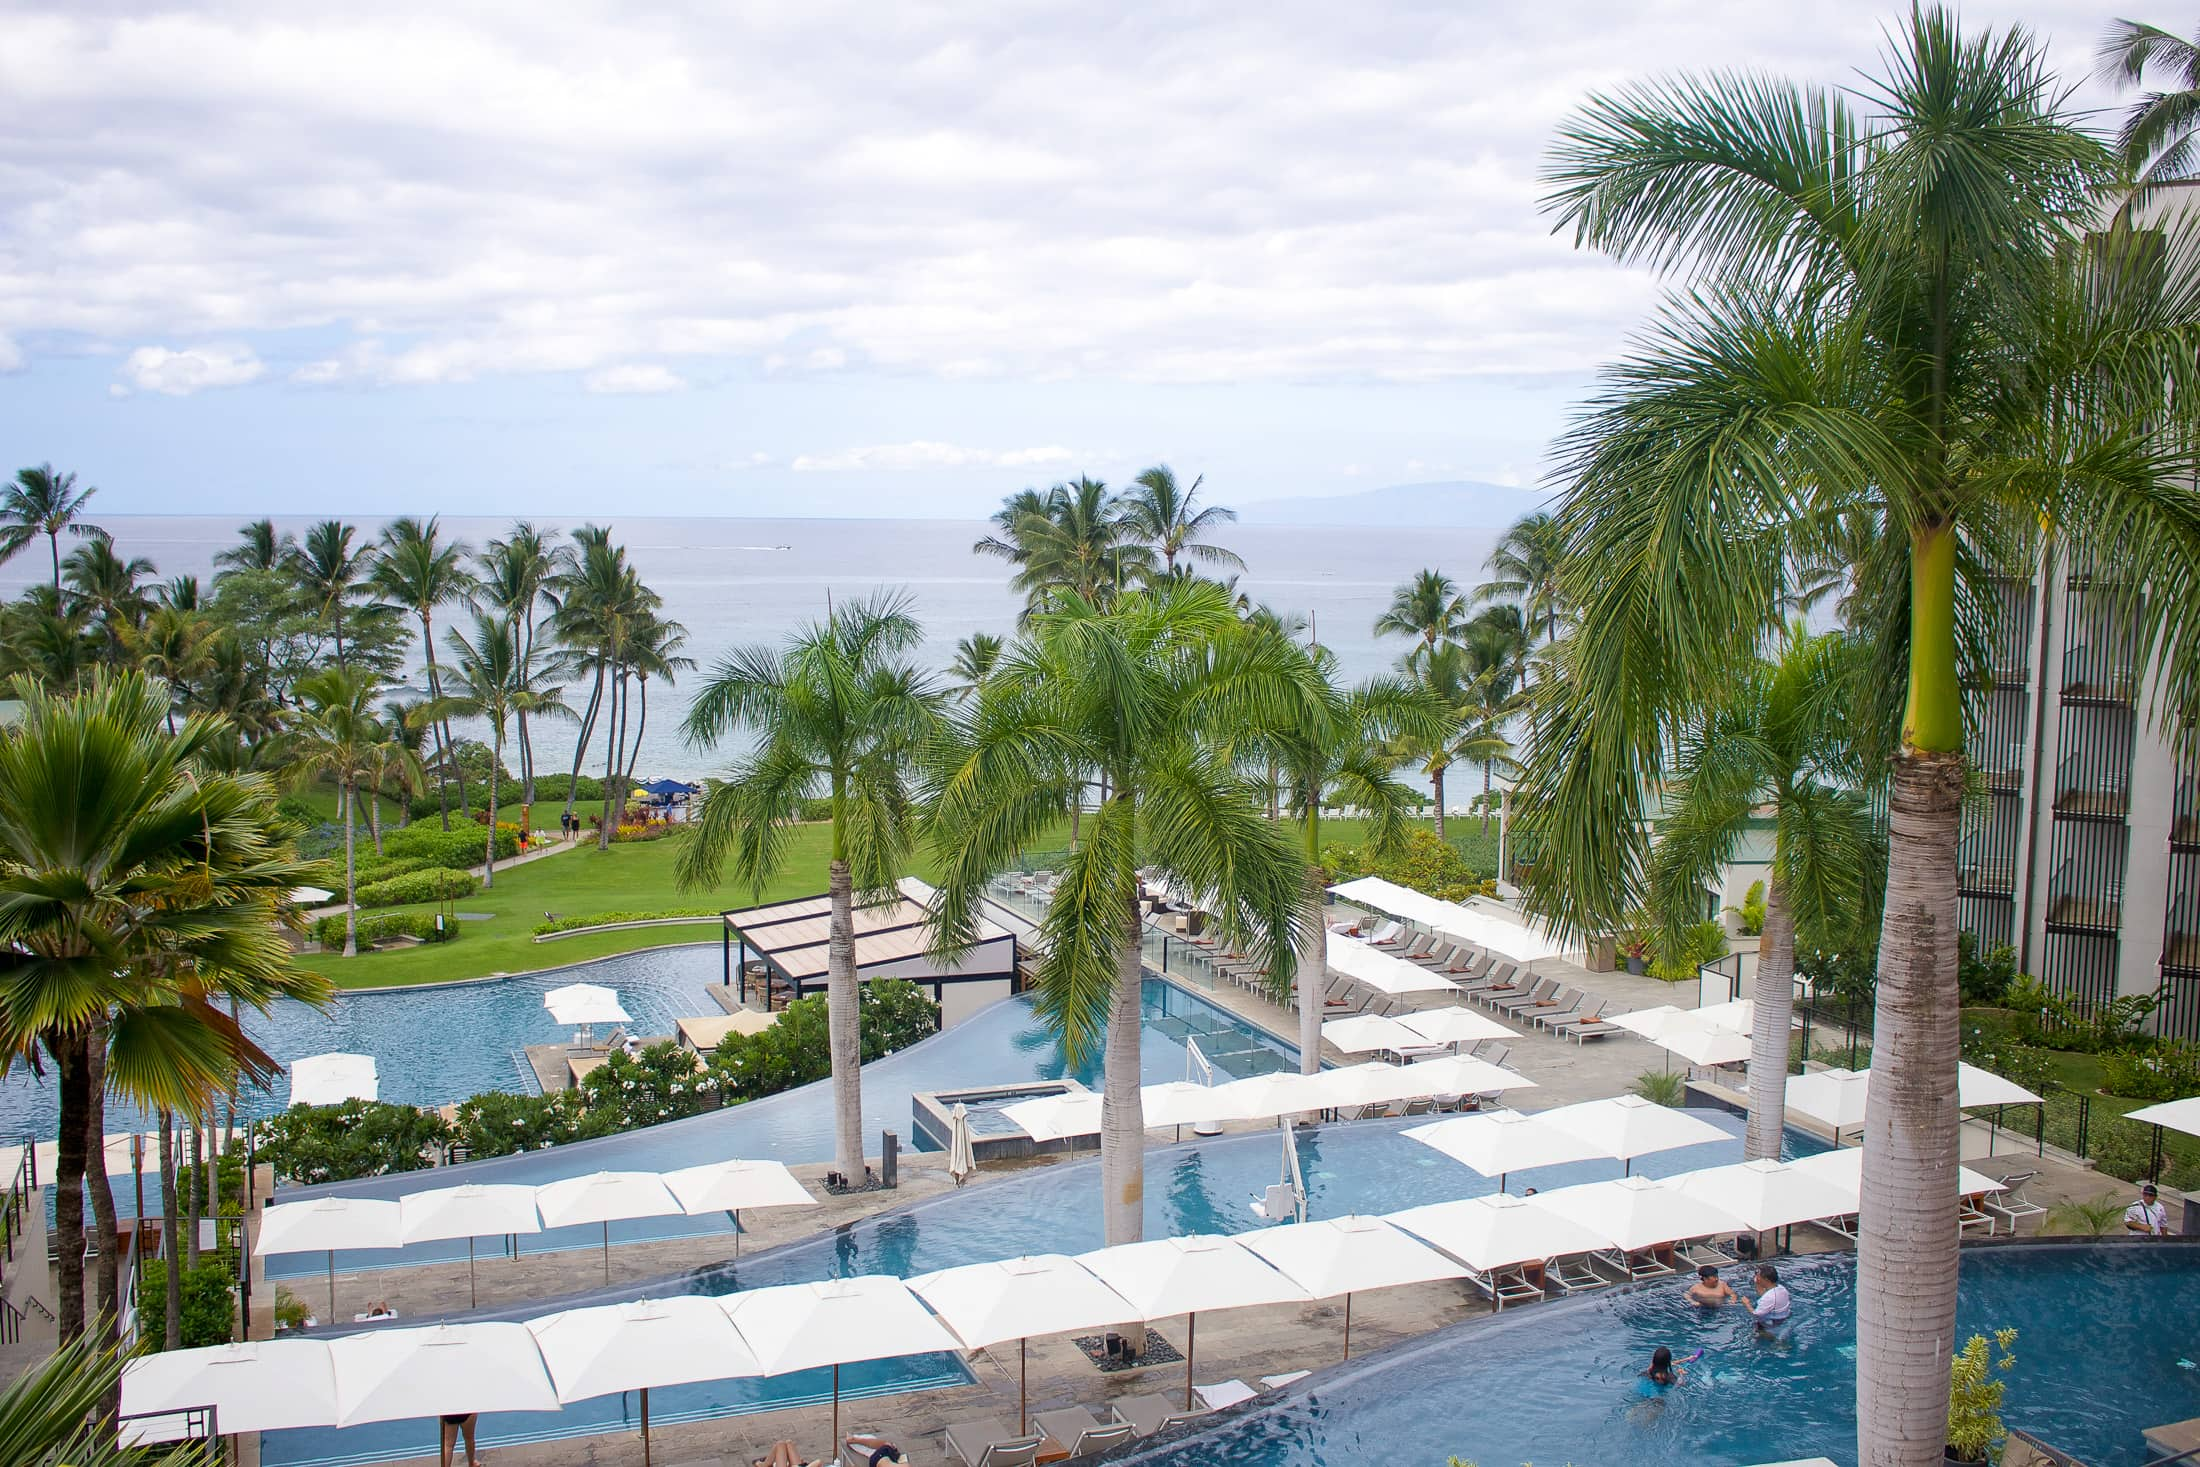 andaz maui, where to stay in maui